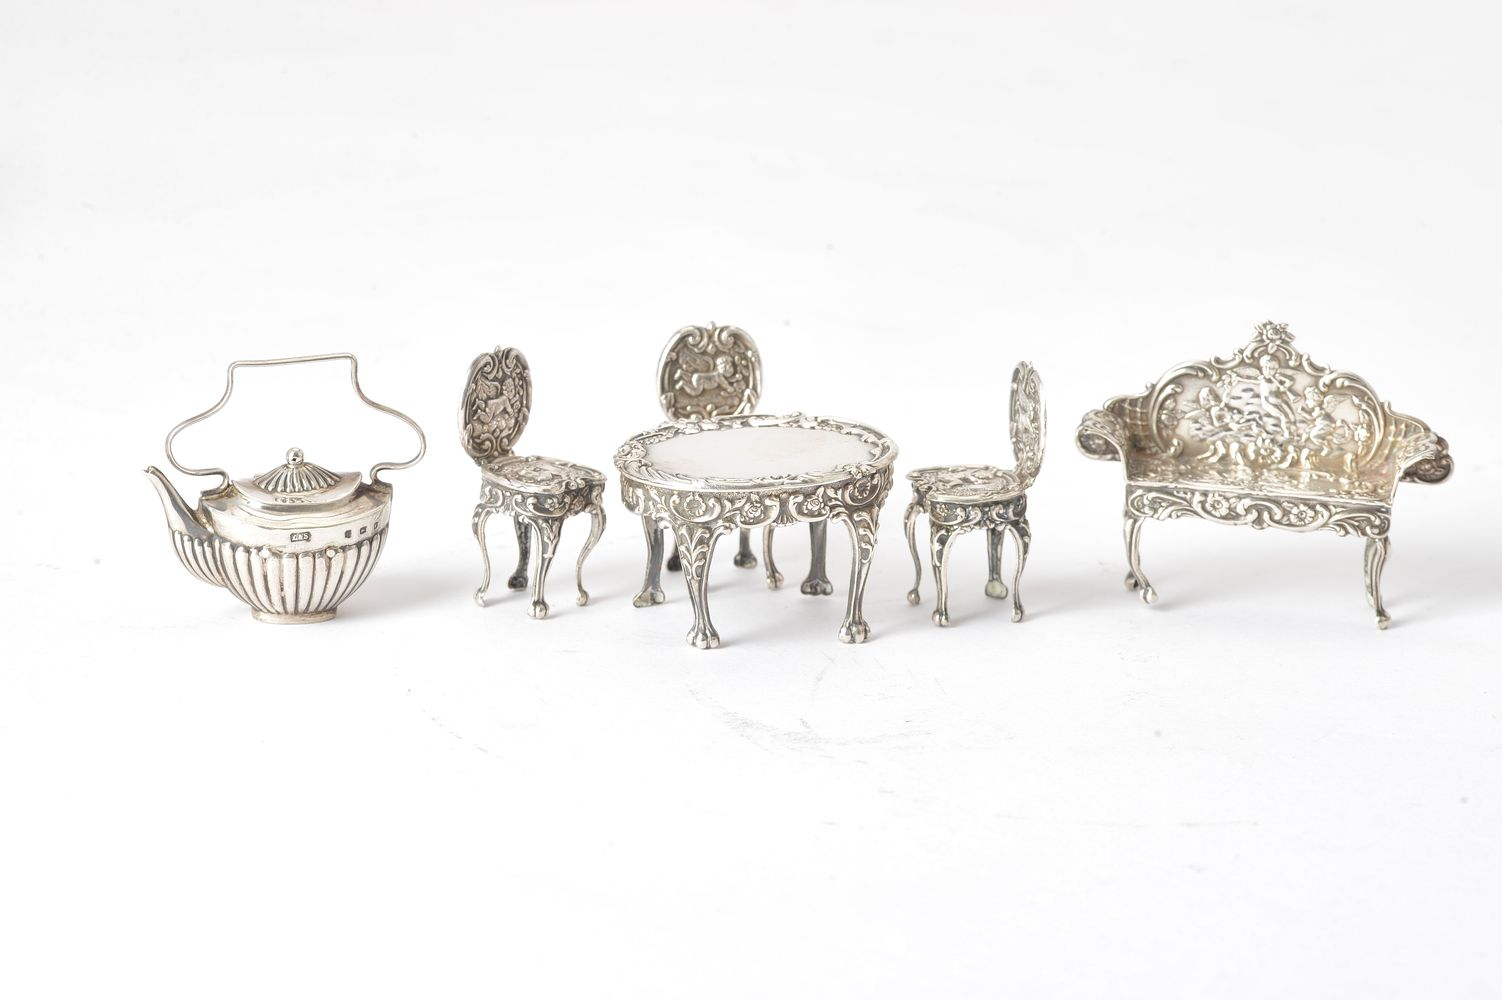 A collection of silver toys mainly furniture